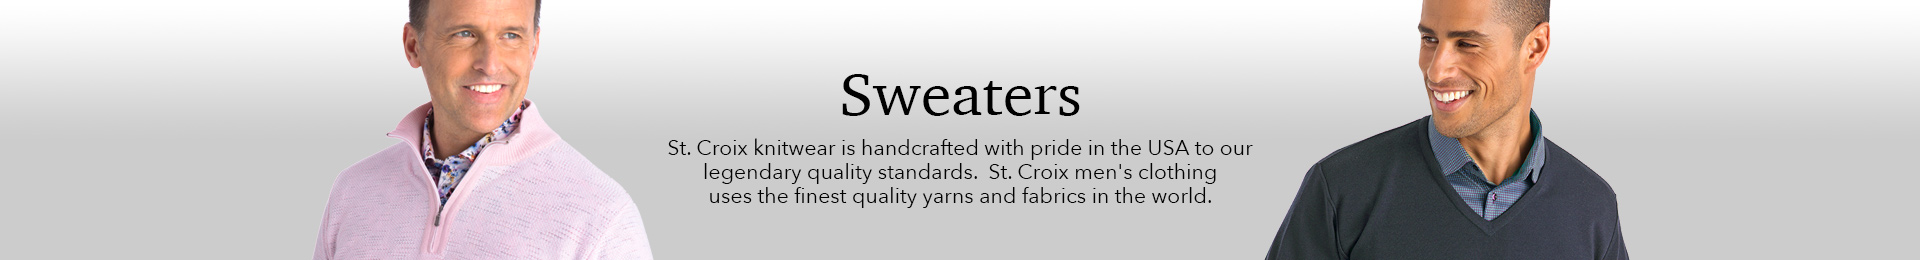 StCroix Sweaters